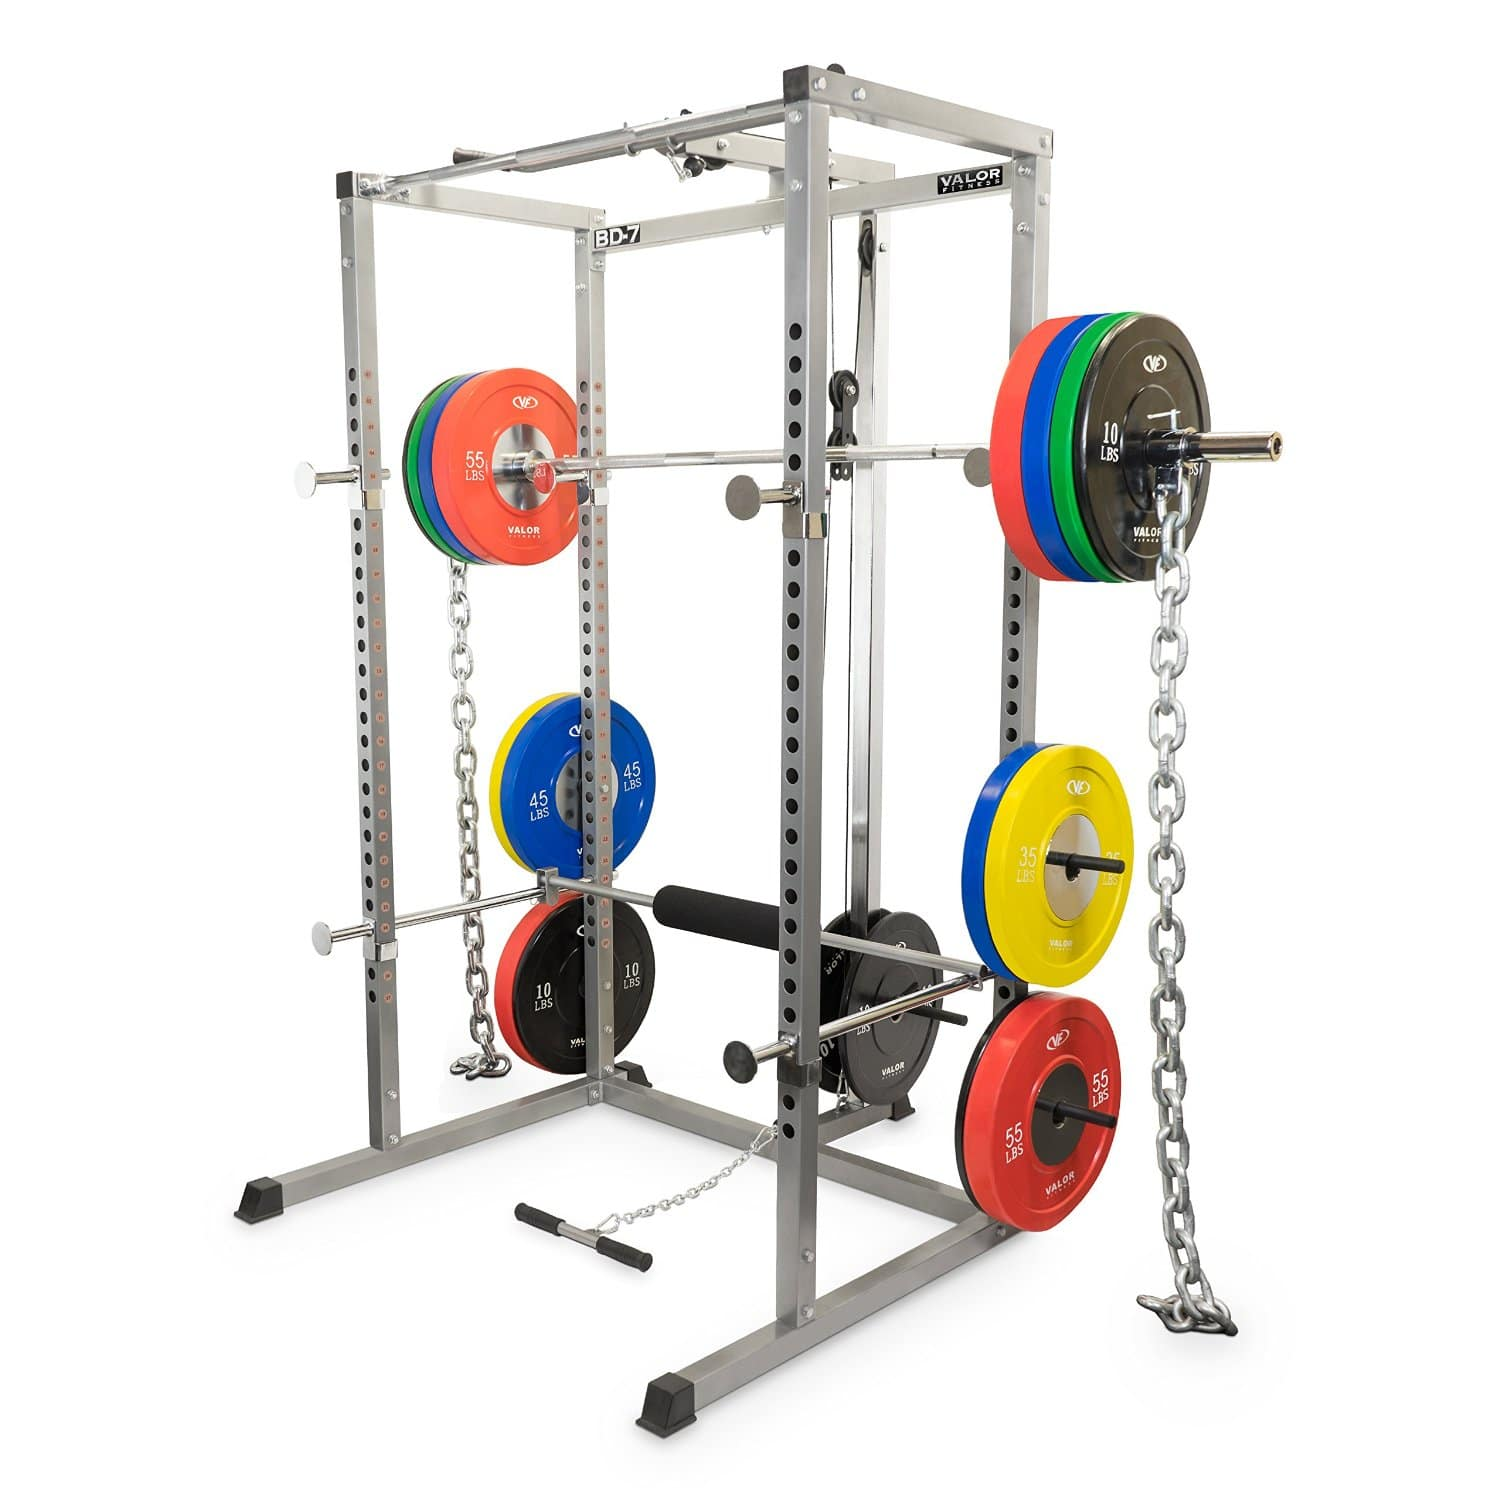 saveenlarge cable trojan lovequilts northern rack hooks racks j power attachment cross for galery lights fitness over titan of